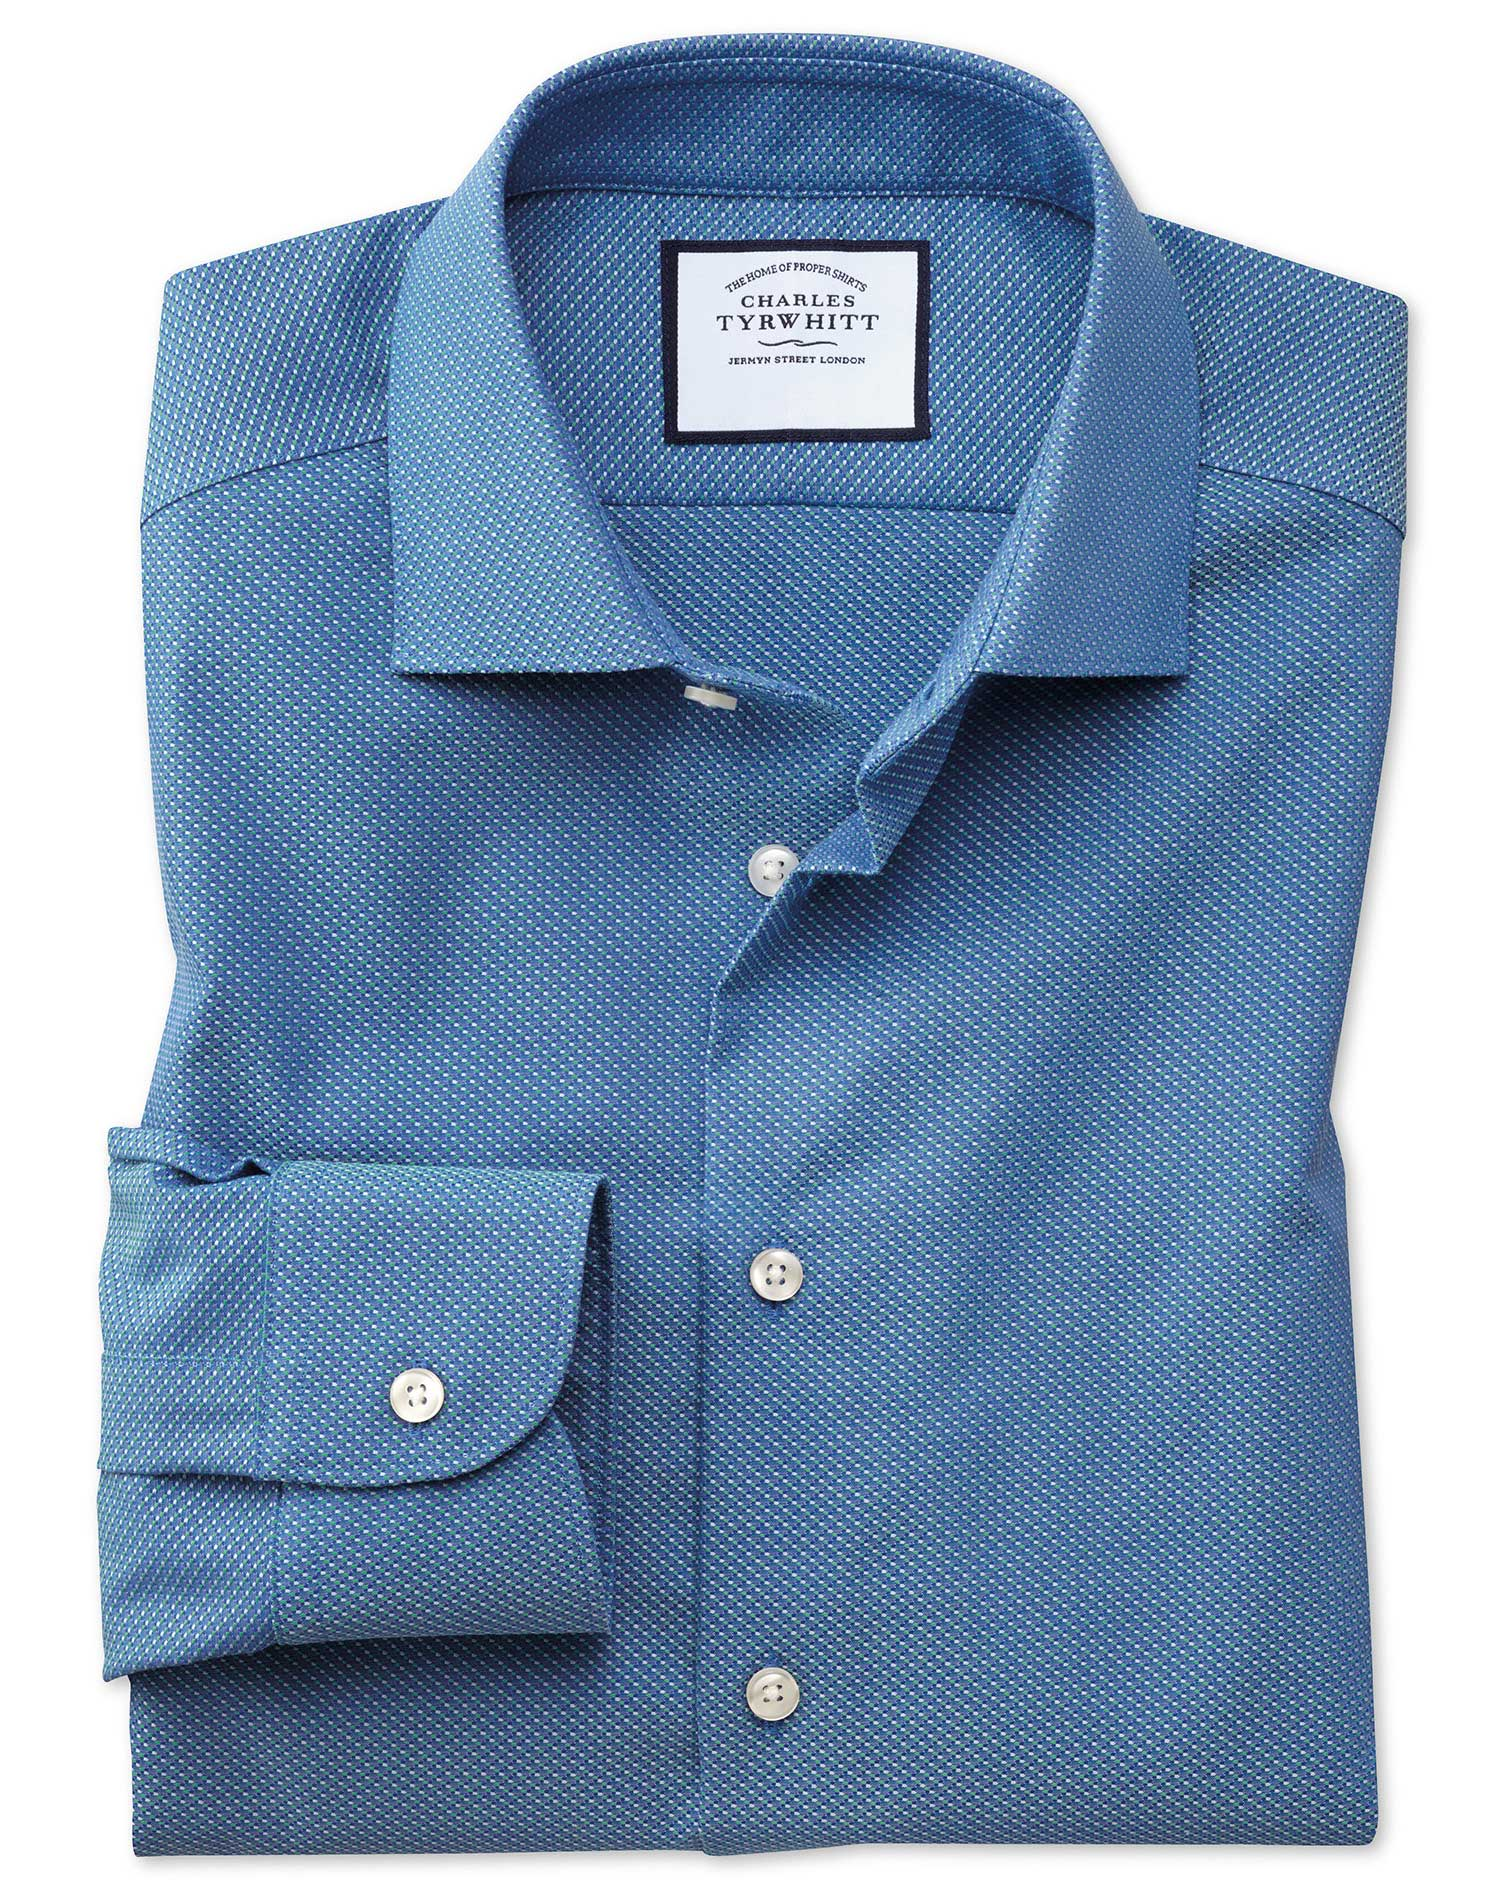 Classic Fit Business Casual Non-Iron Blue and Teal Dash Dobby Cotton Formal Shirt Single Cuff Size 1